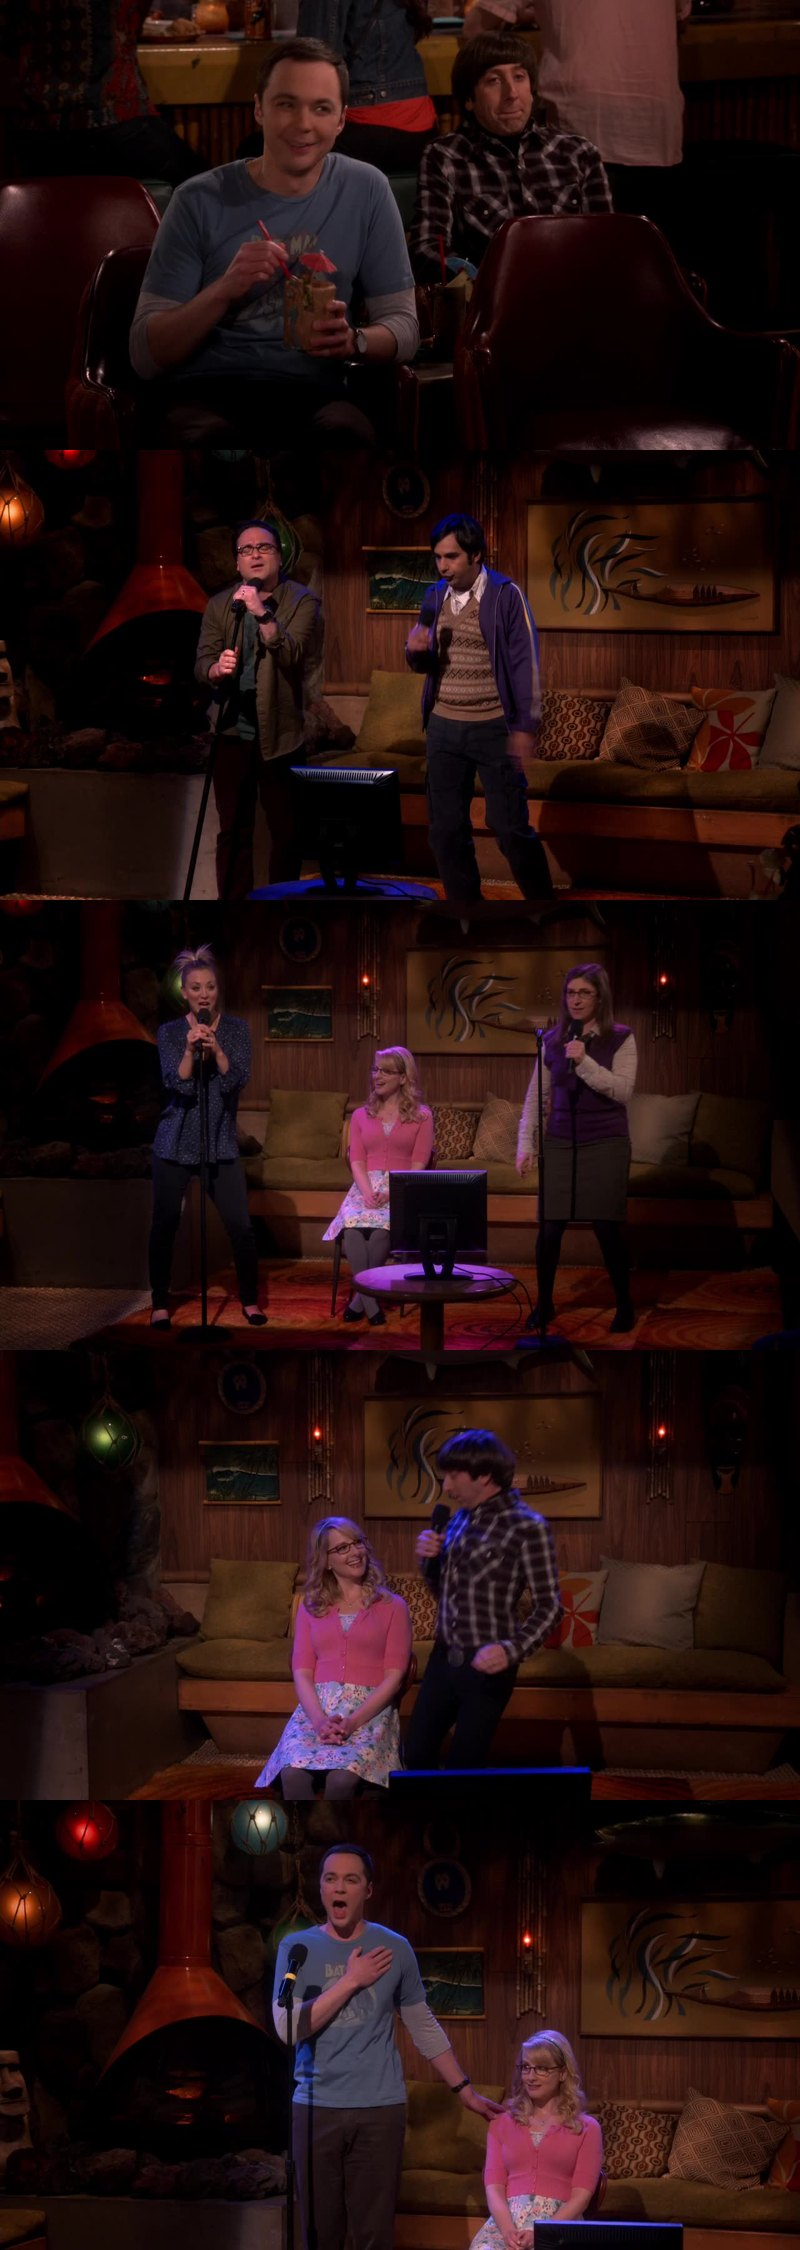 DRUNK SHELDON IS THE BEST AND THE KARAOKE PART WAS SUPER FUN Great episode!